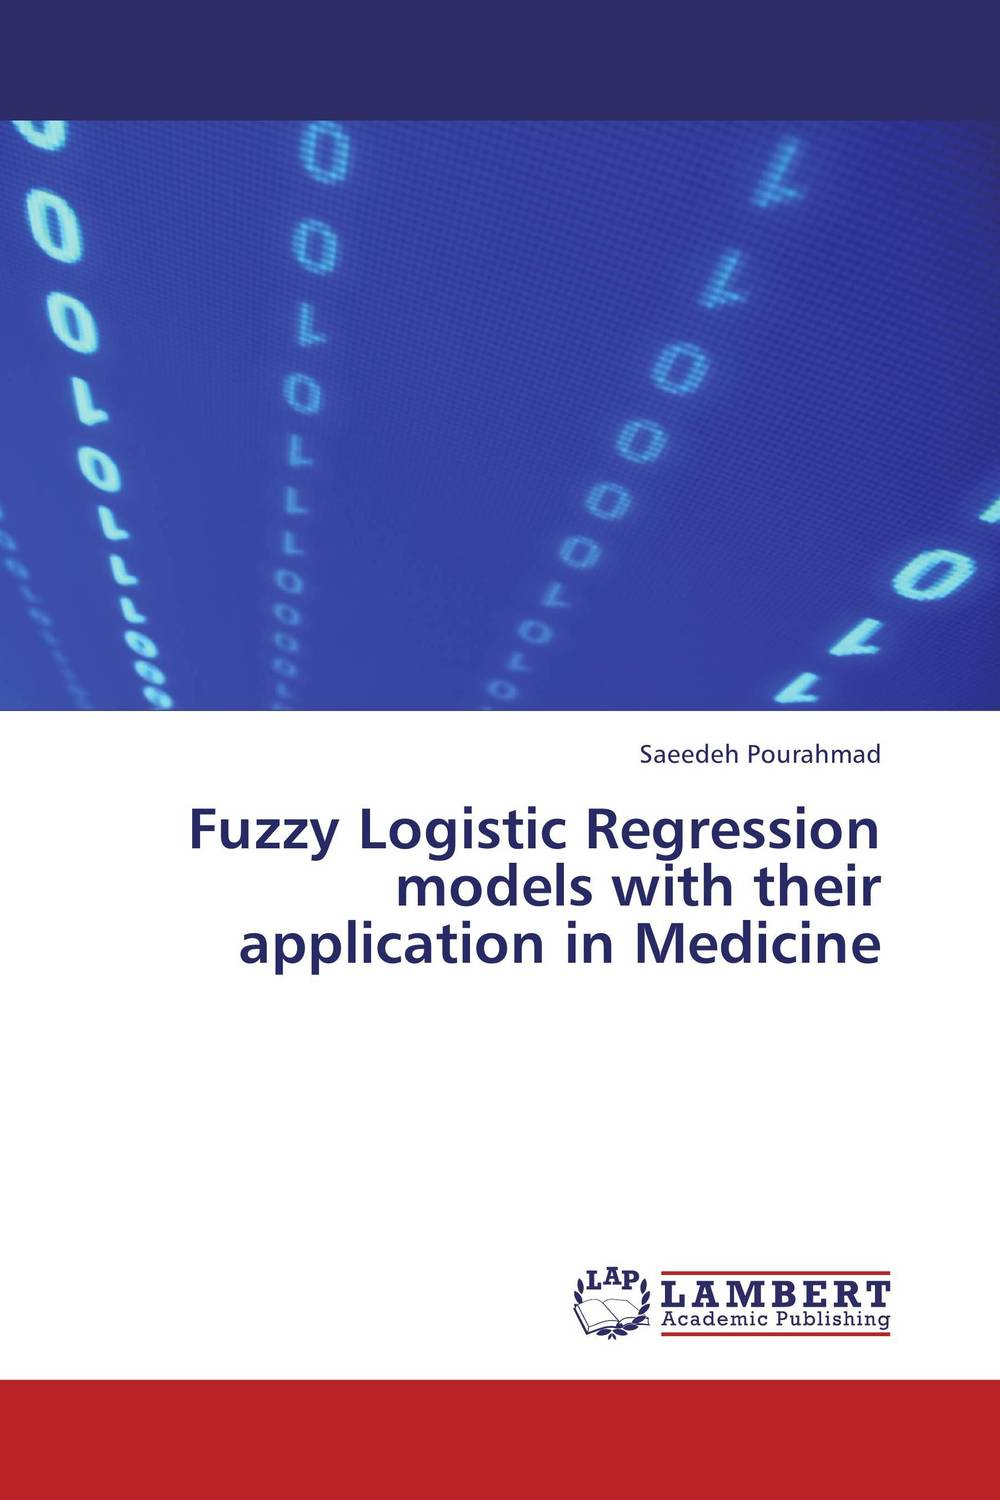 Fuzzy Logistic Regression models with their application in Medicine linear regression models with heteroscedastic errors